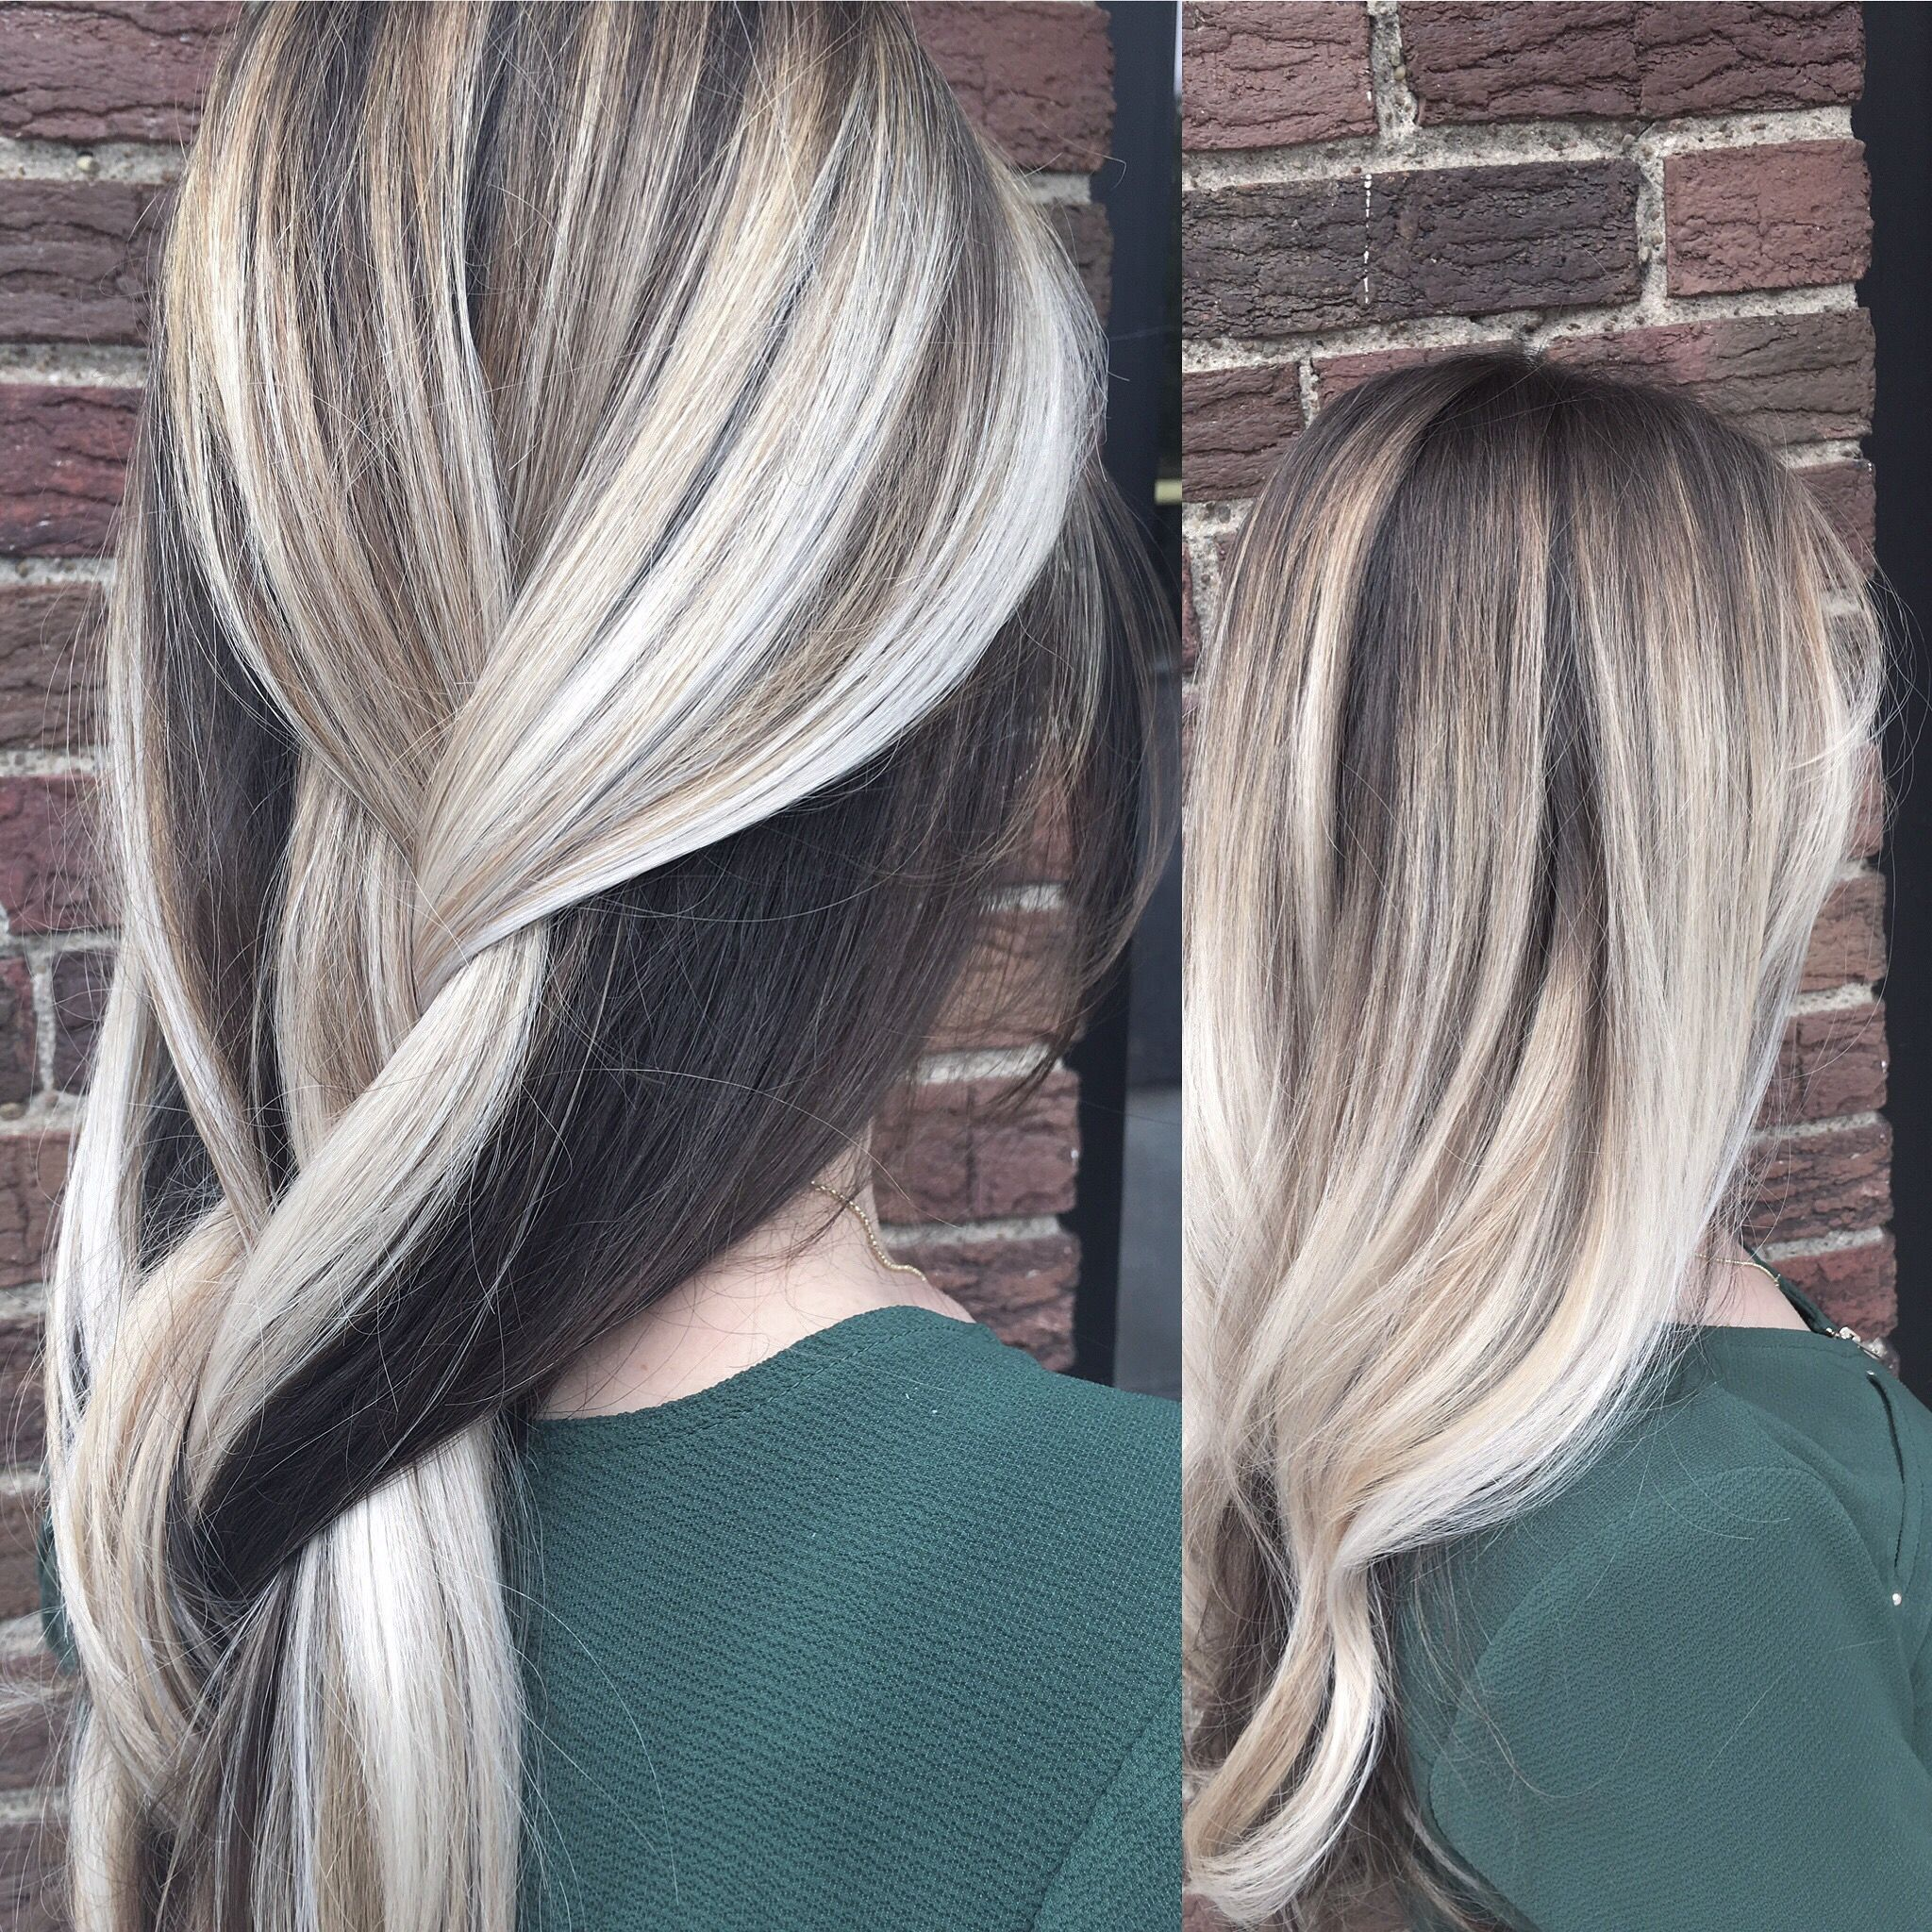 Blonde balayage, icy blonde hair, blonde hair, dark underneath!